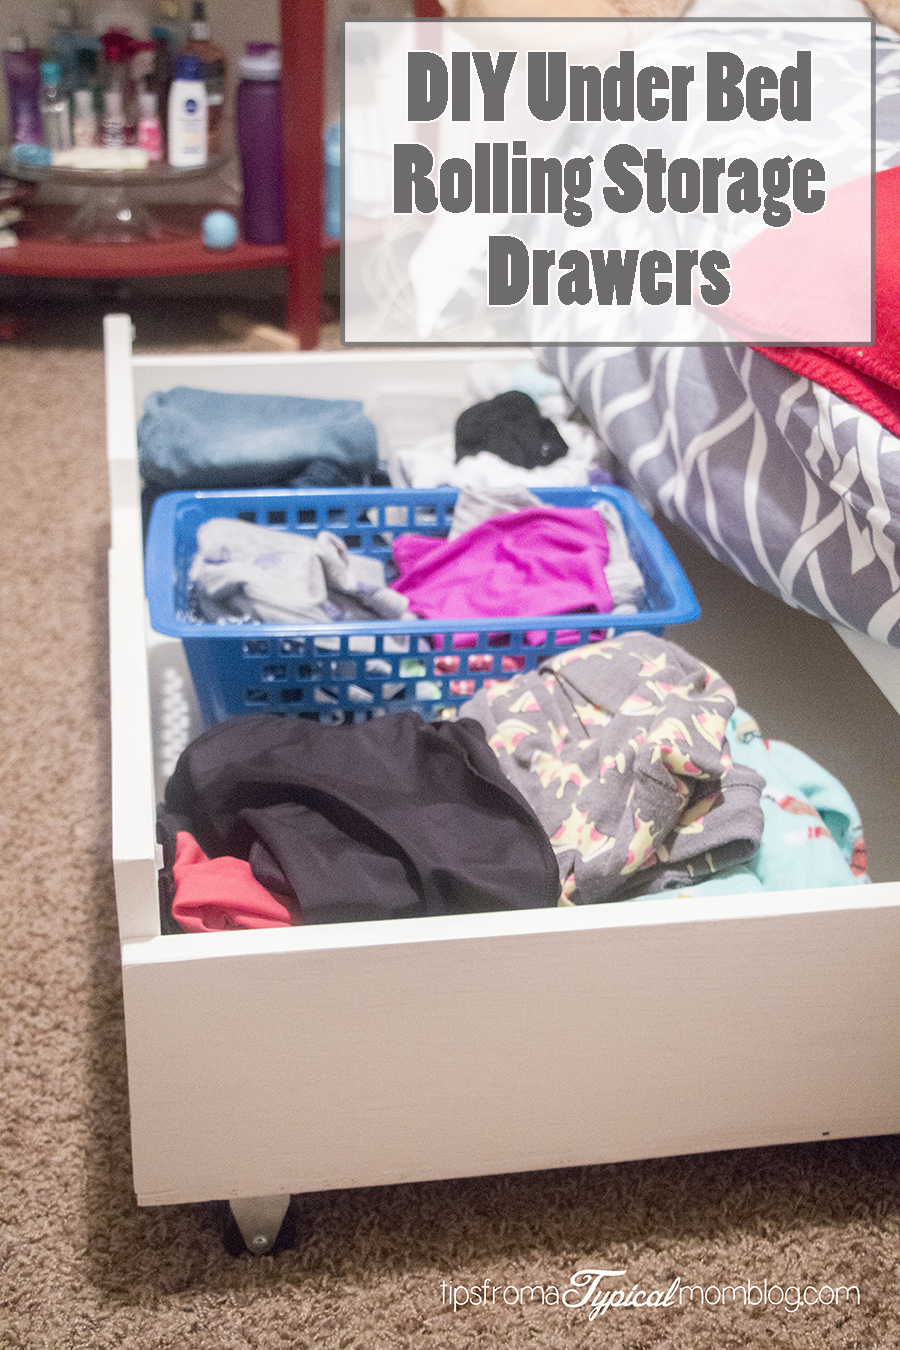 Diy Under Bed Rolling Storage Drawers Tutorial Tips From